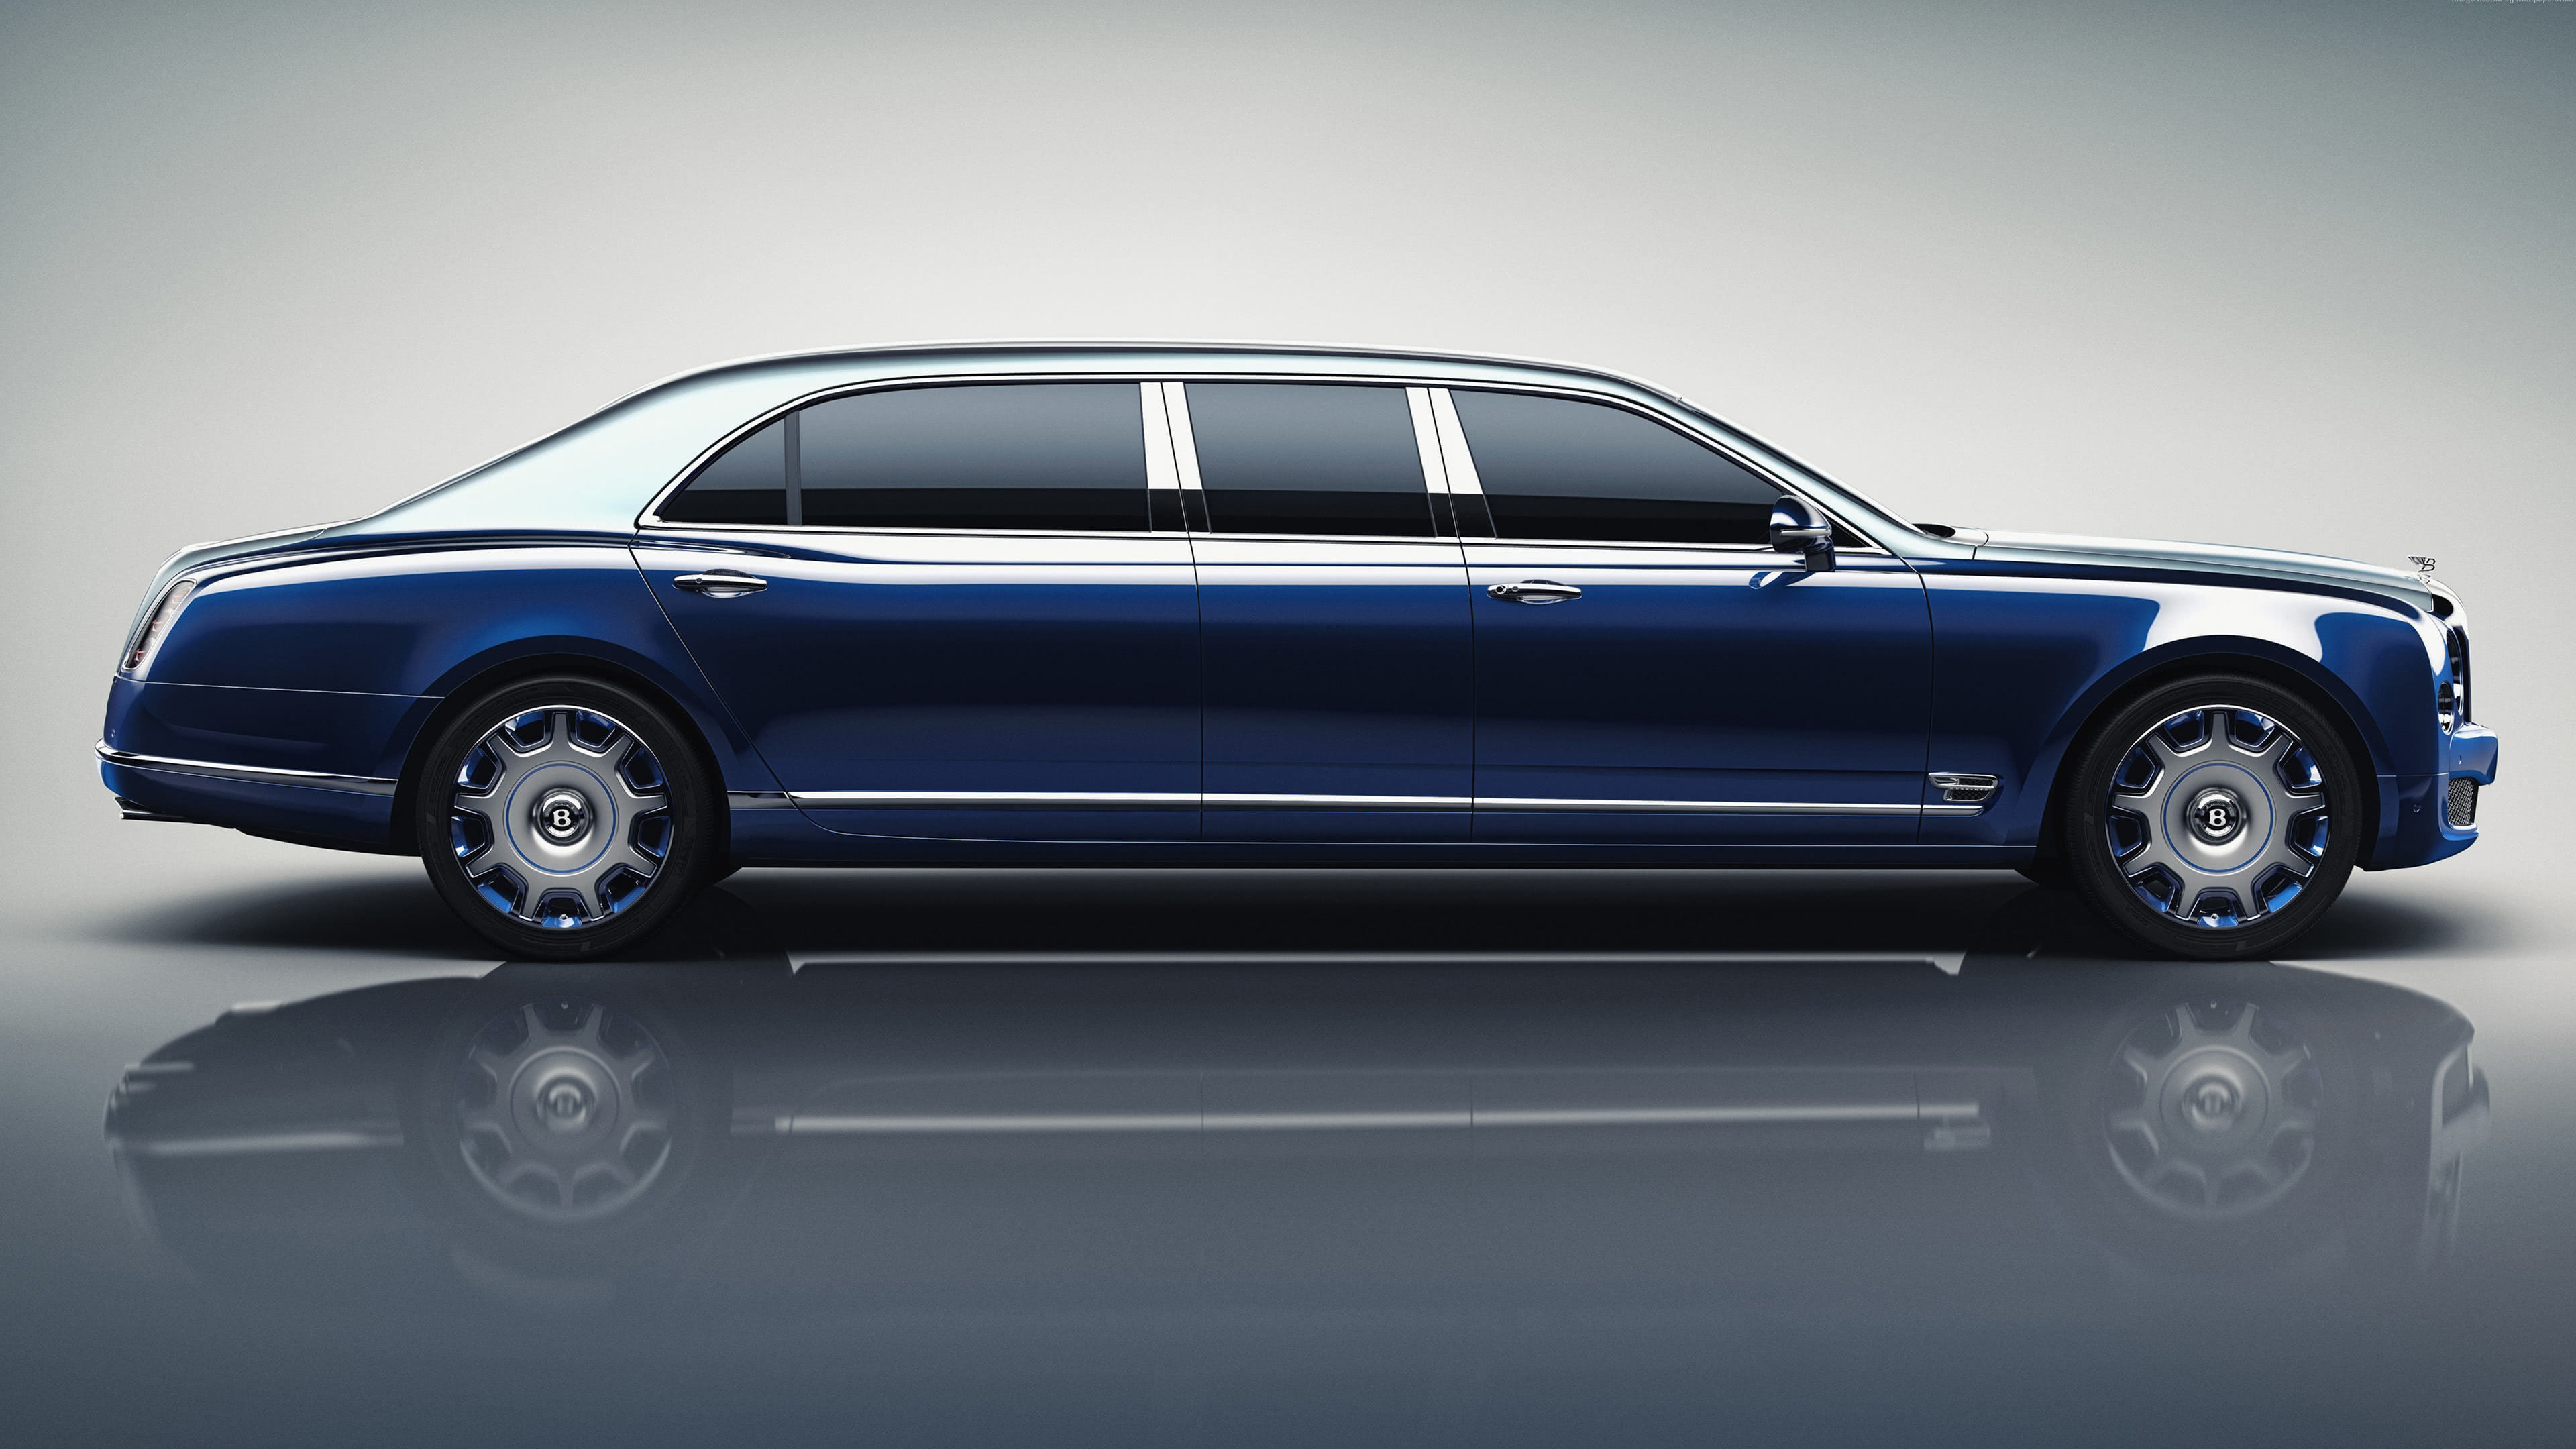 Bentley Mulsanne Grand Limousine Side UHD 4K Wallpaper Pixelz 3840x2160